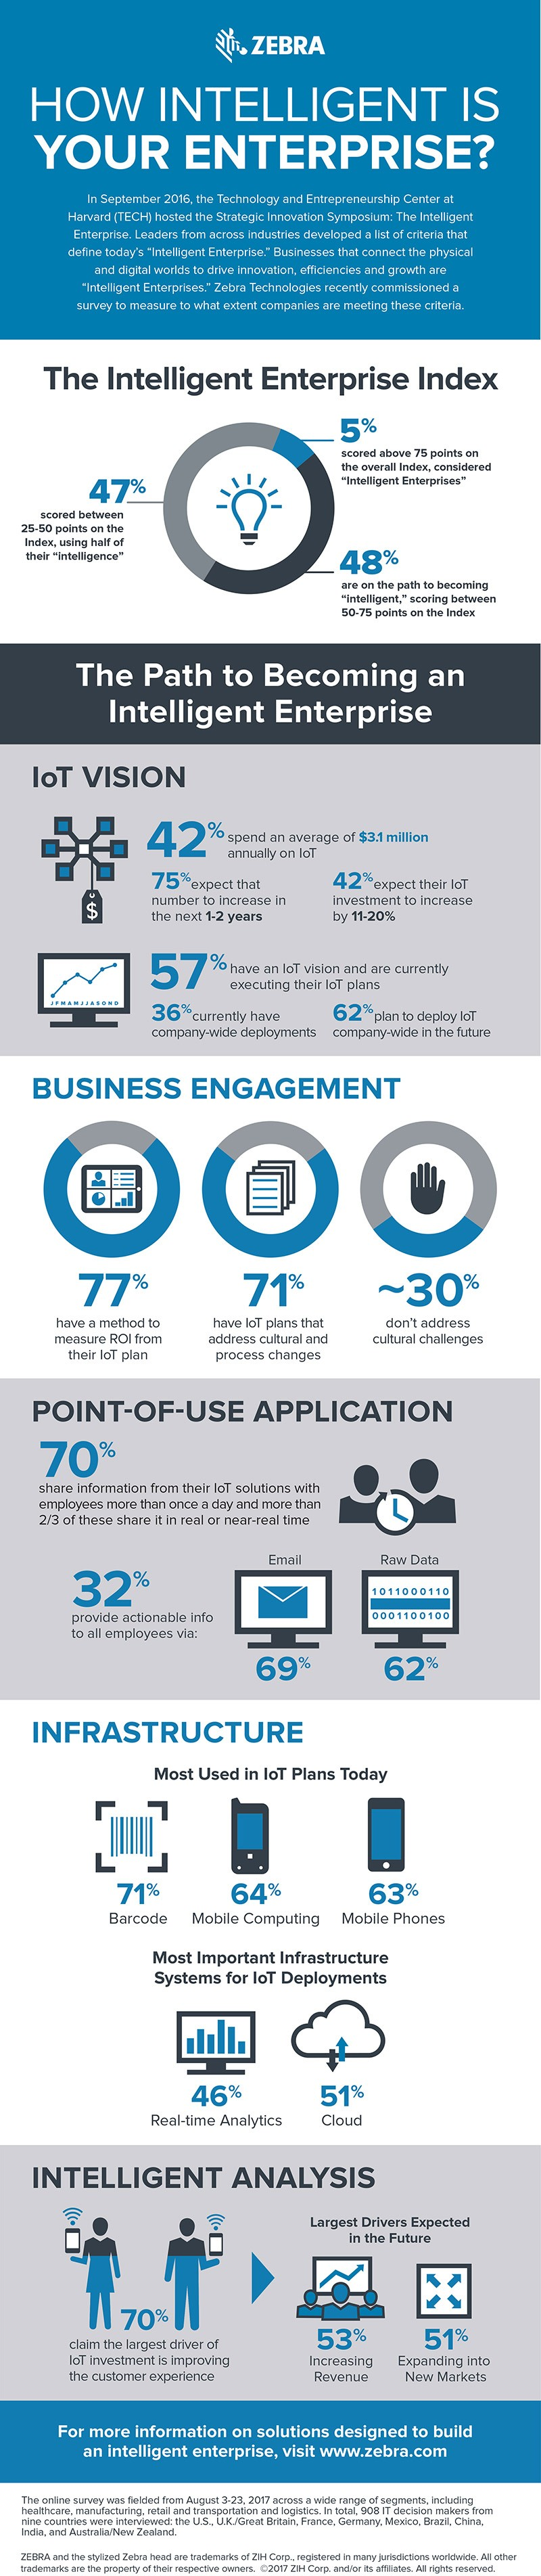 infographic: how intelligent are the enterprises